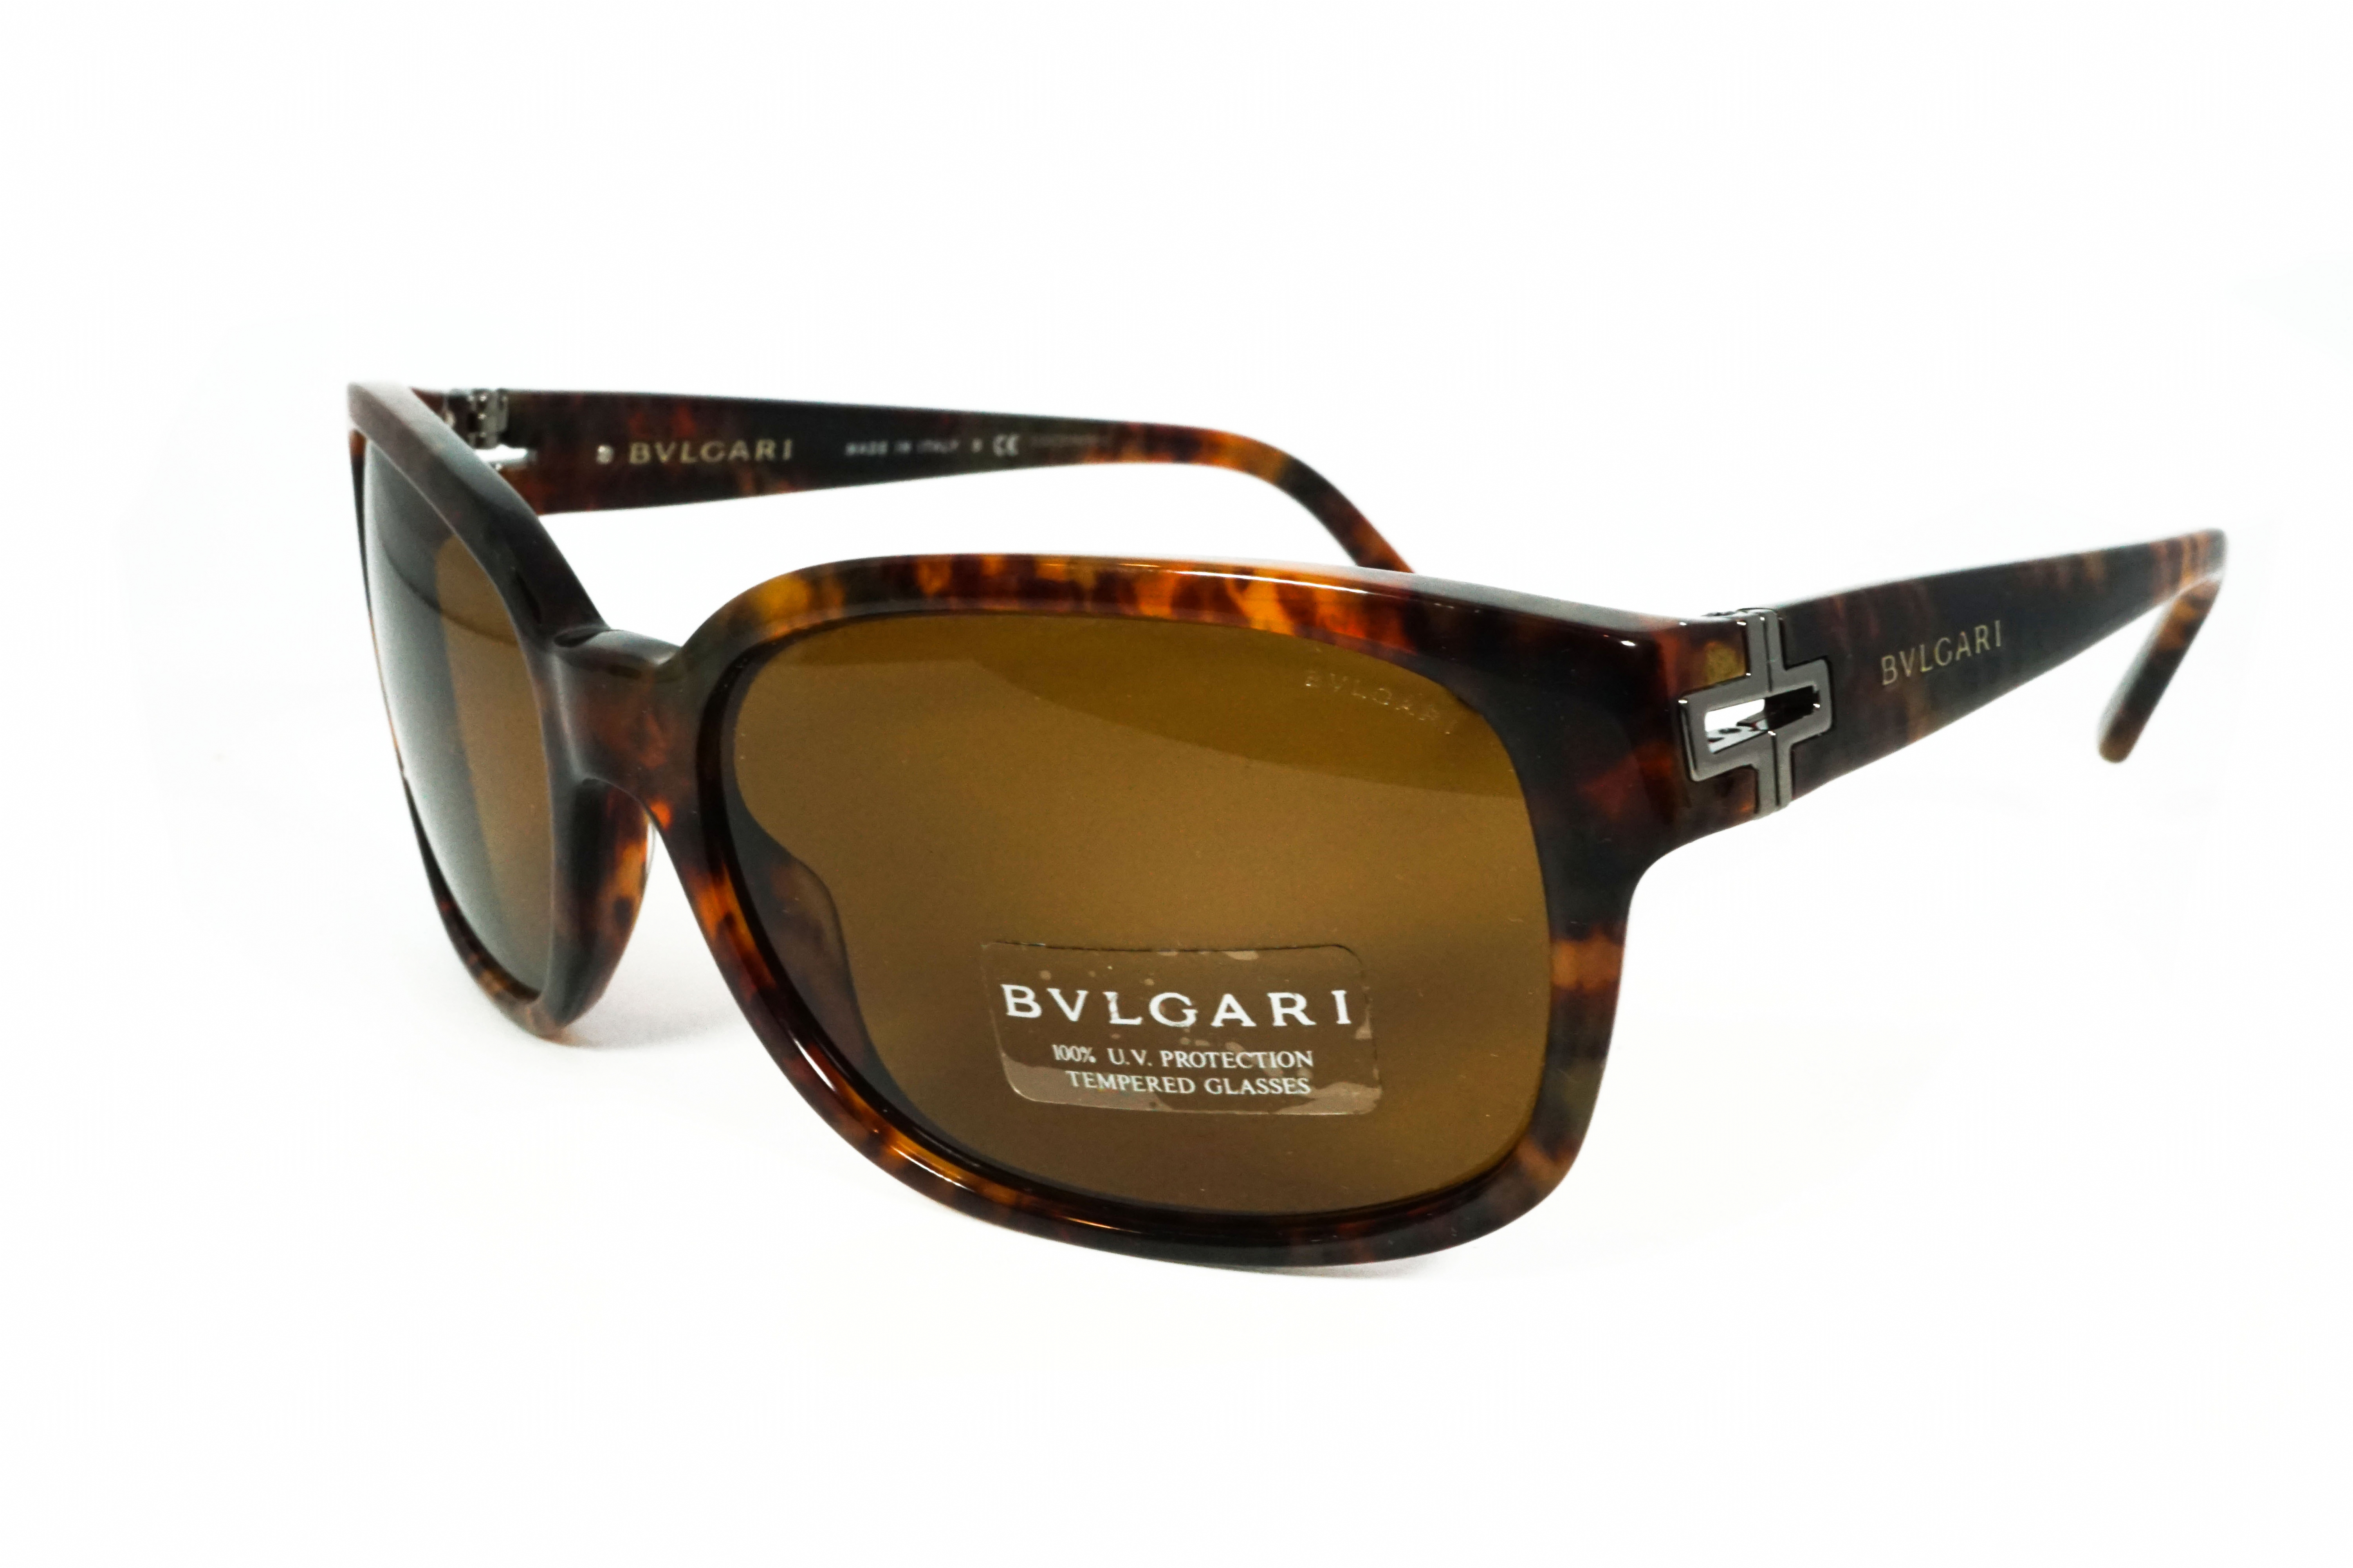 BVLGARI Sunglasses 7006 in color 502933 at Sears.com